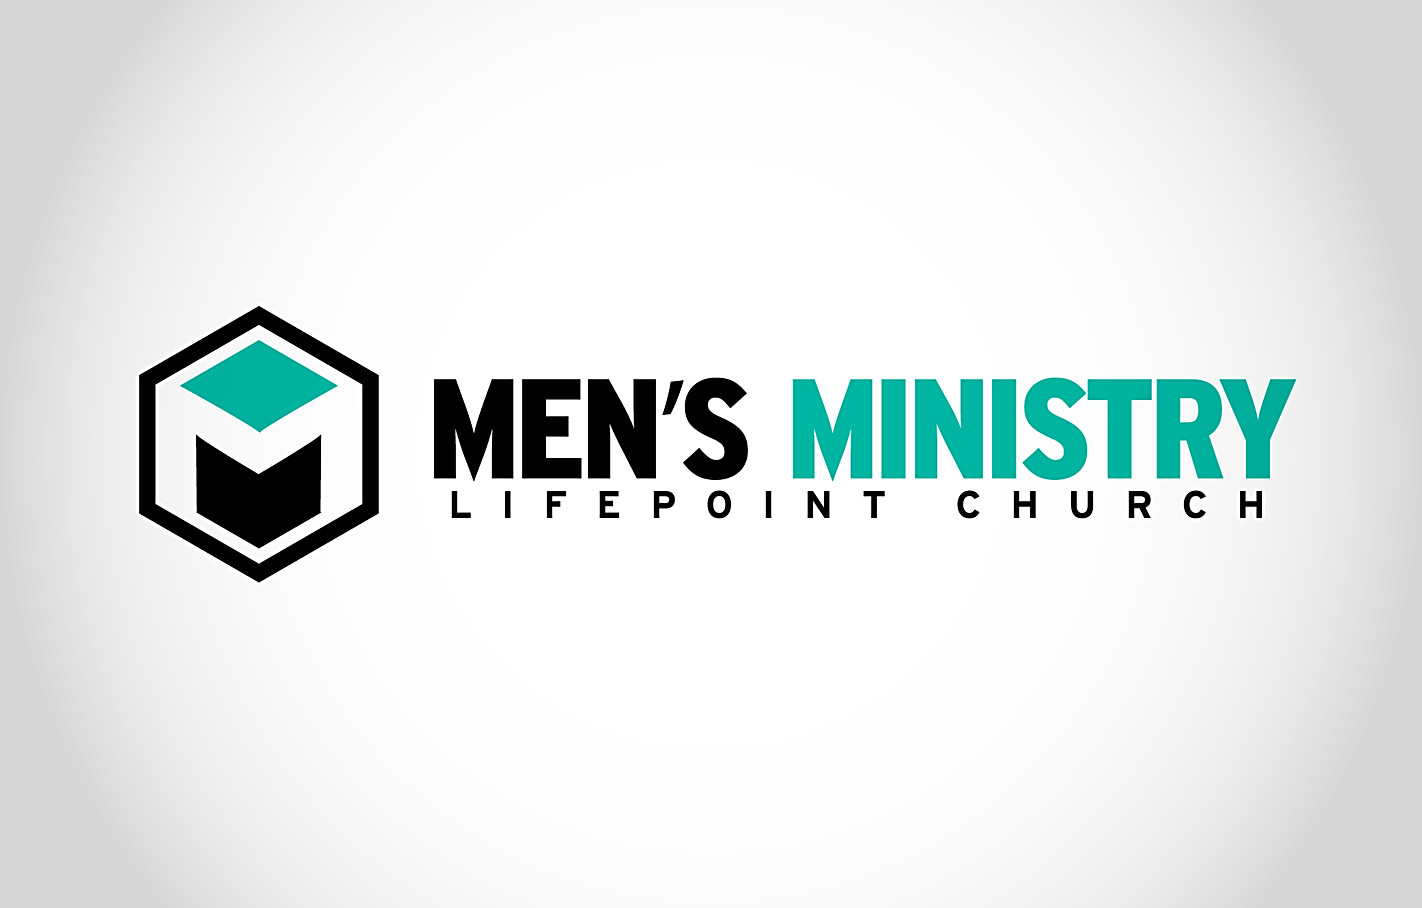 LifePoint Church Men's Ministry Logo